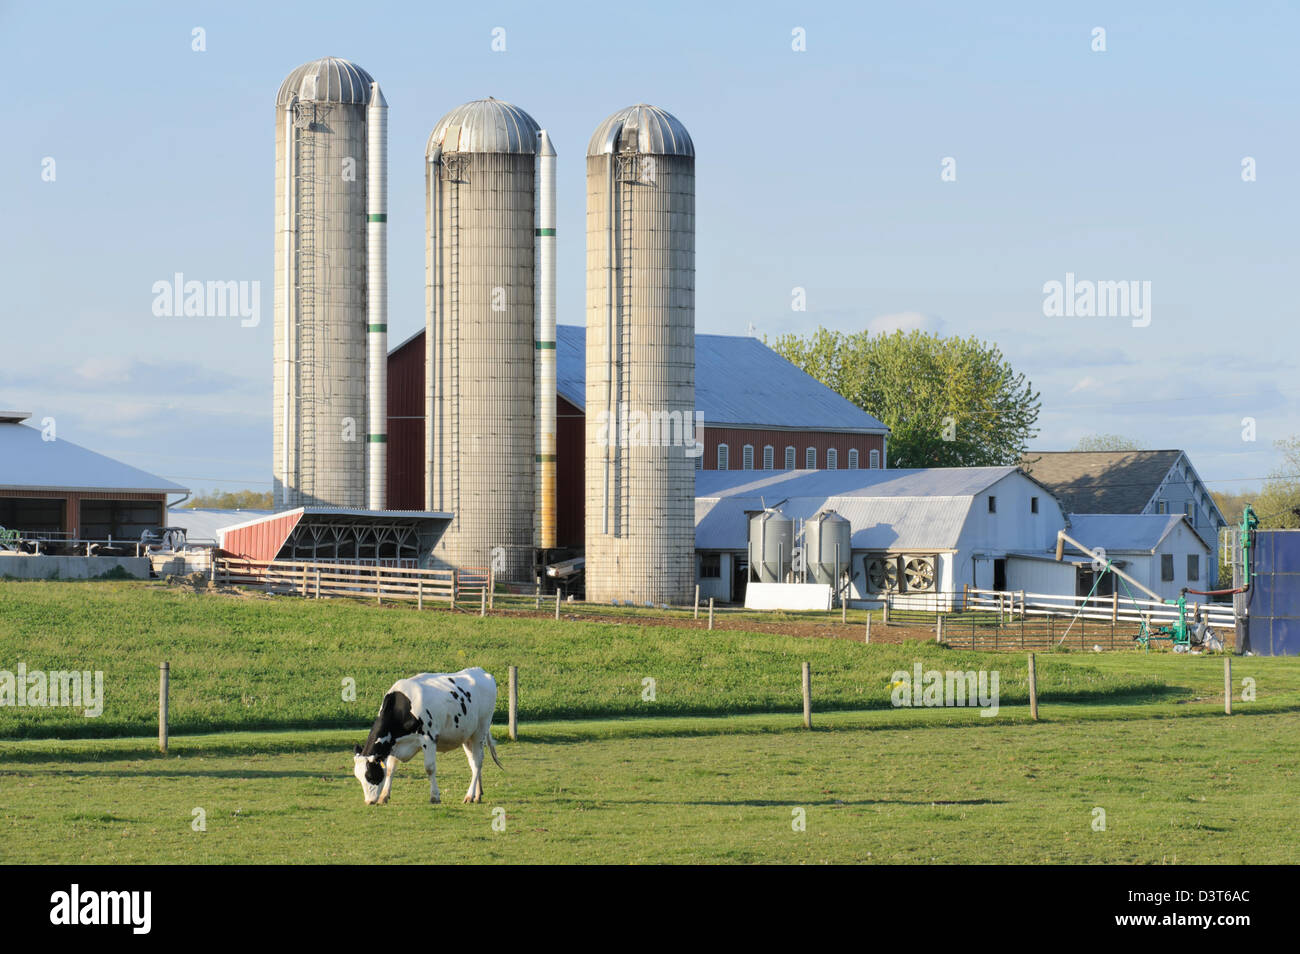 Cow on green pasture with red barn with grain silo royalty free stock - Dairy Farm With Holstein Cows In Pasture And Three Silos In Evening Light Pennsylvania Country